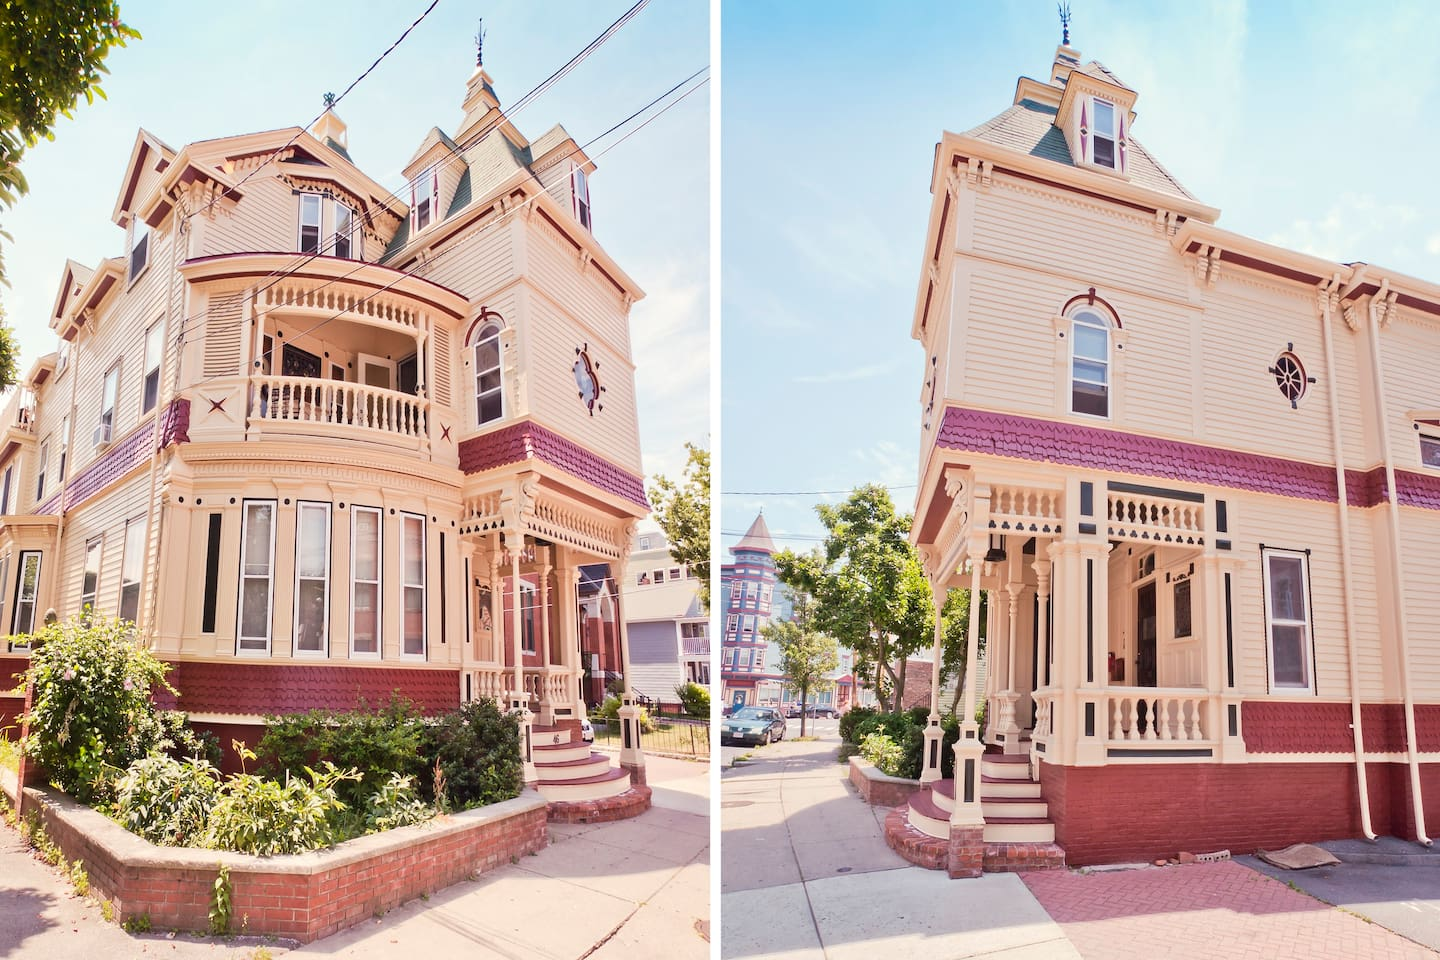 The Queen Anne Victorian